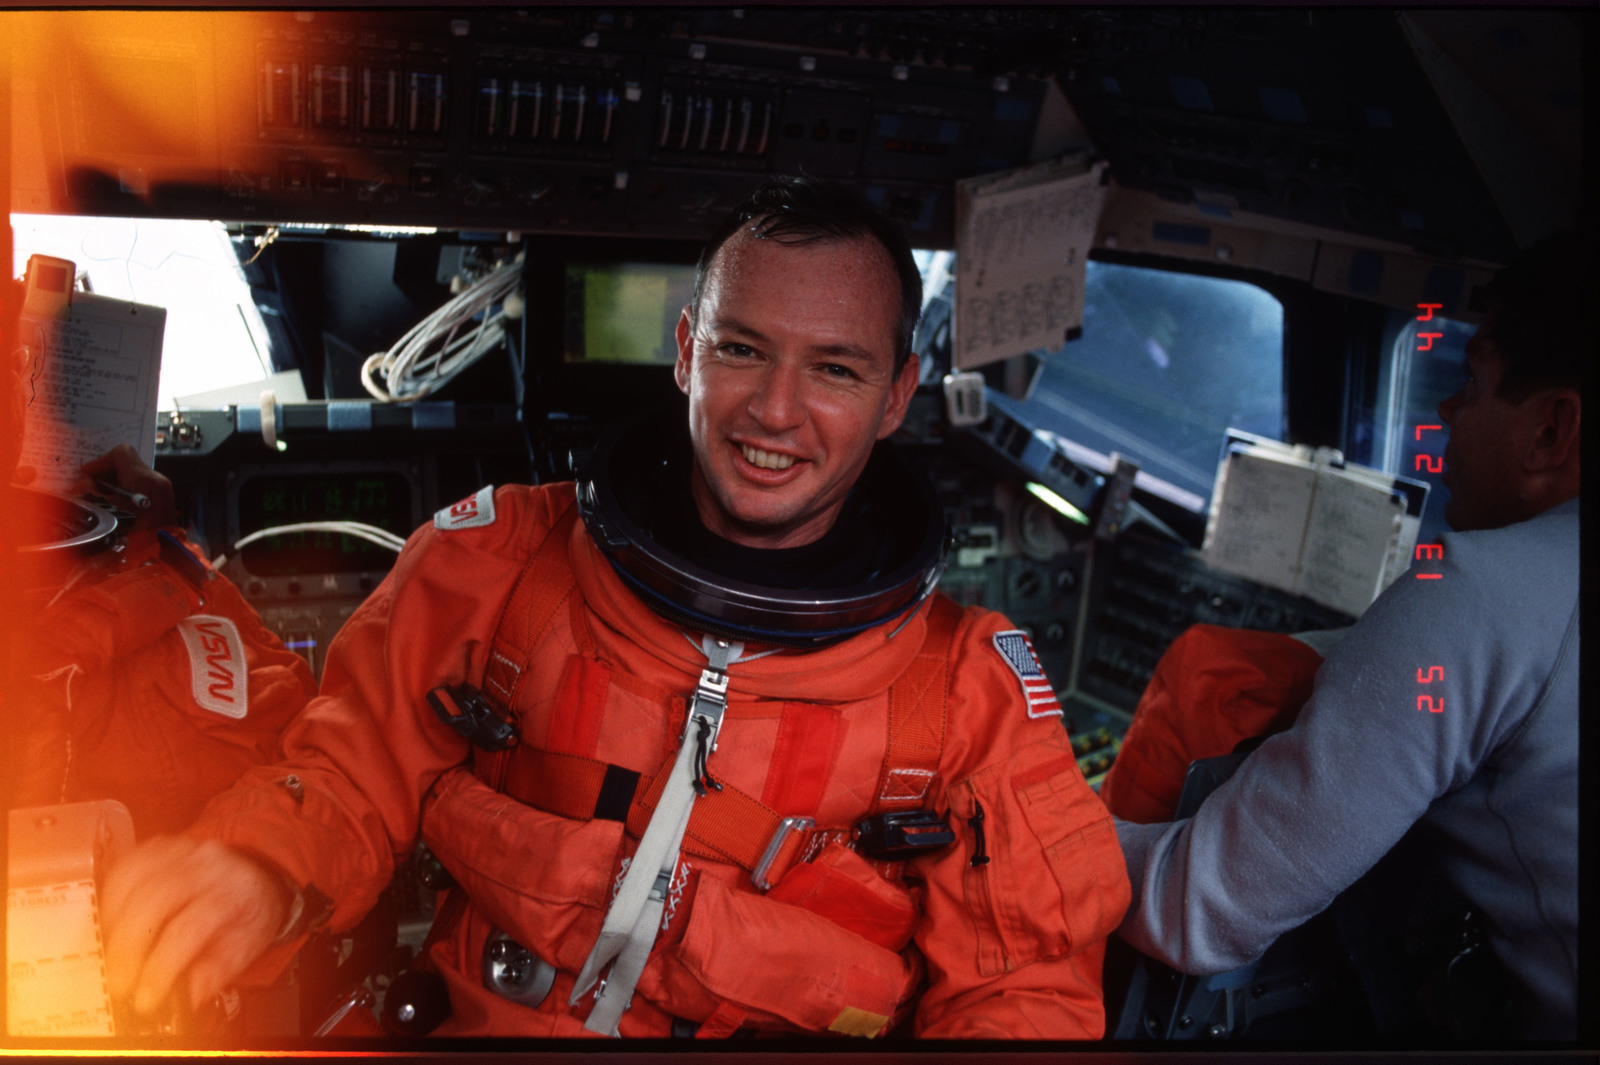 S45-01-023 - STS-045 - STS-45 crewmembers on flight deck